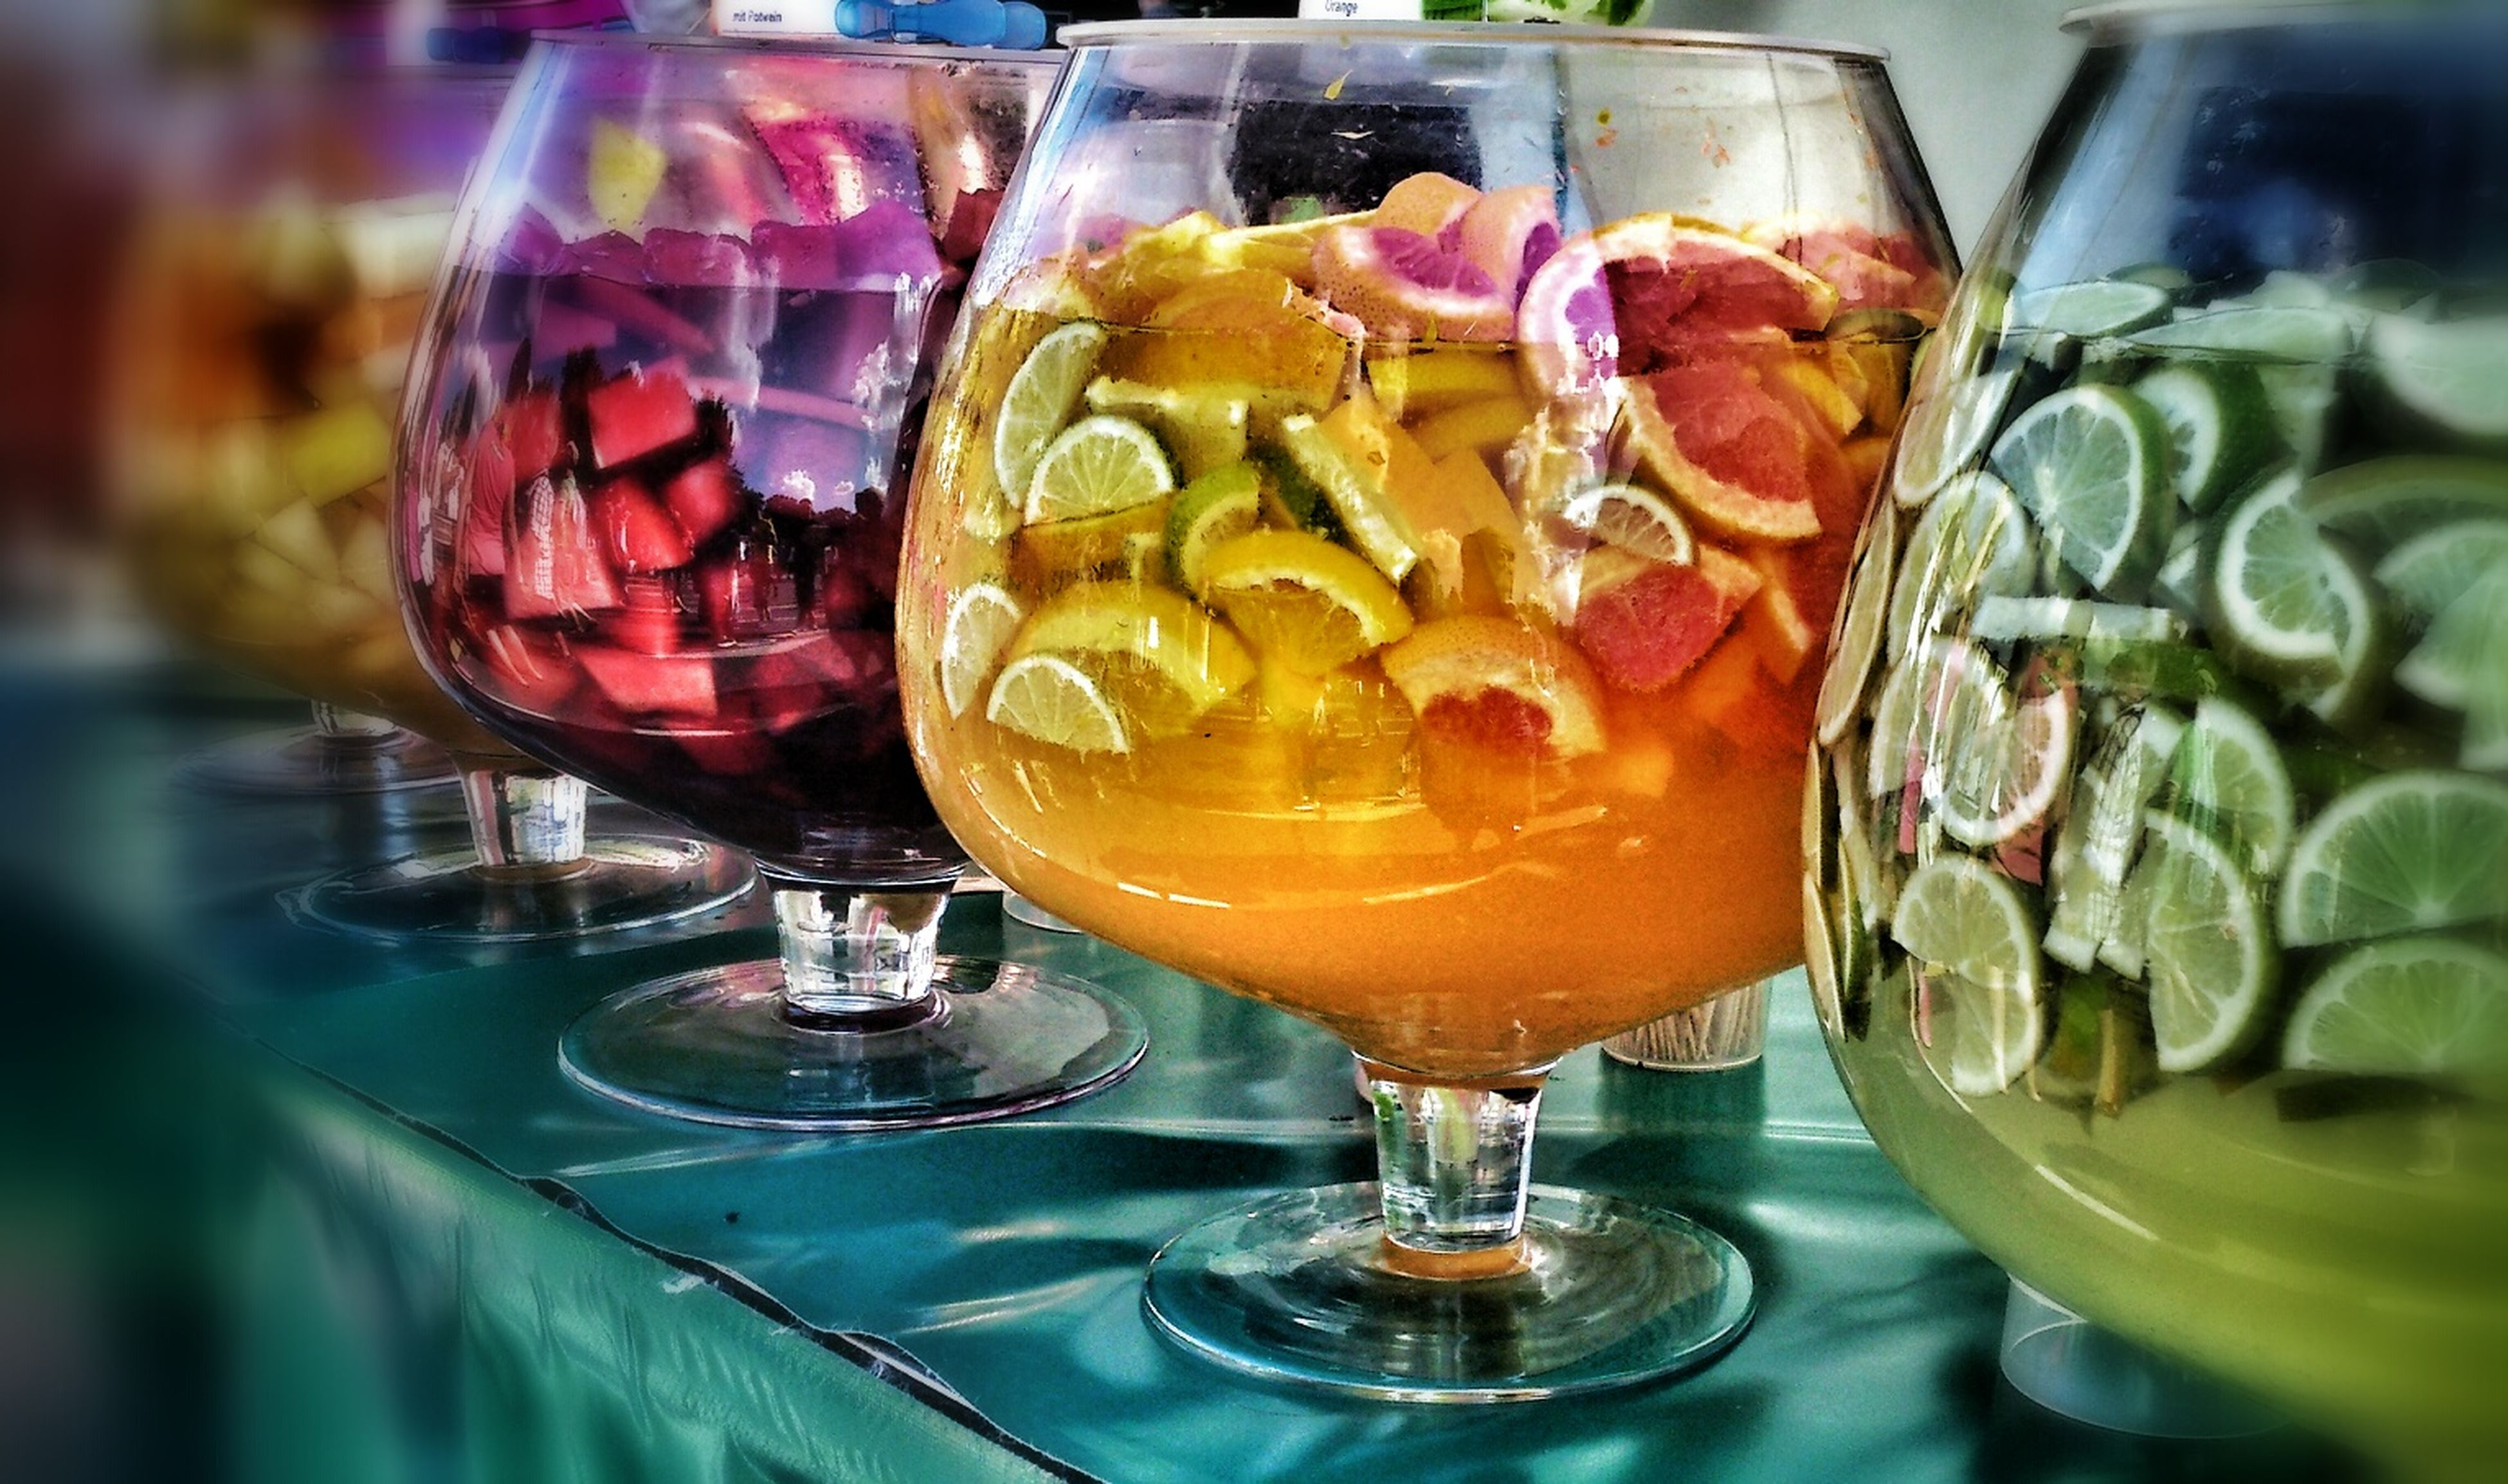 food and drink, drinking glass, drink, freshness, refreshment, indoors, glass - material, table, still life, alcohol, close-up, transparent, wineglass, cocktail, restaurant, wine, focus on foreground, glass, indulgence, food